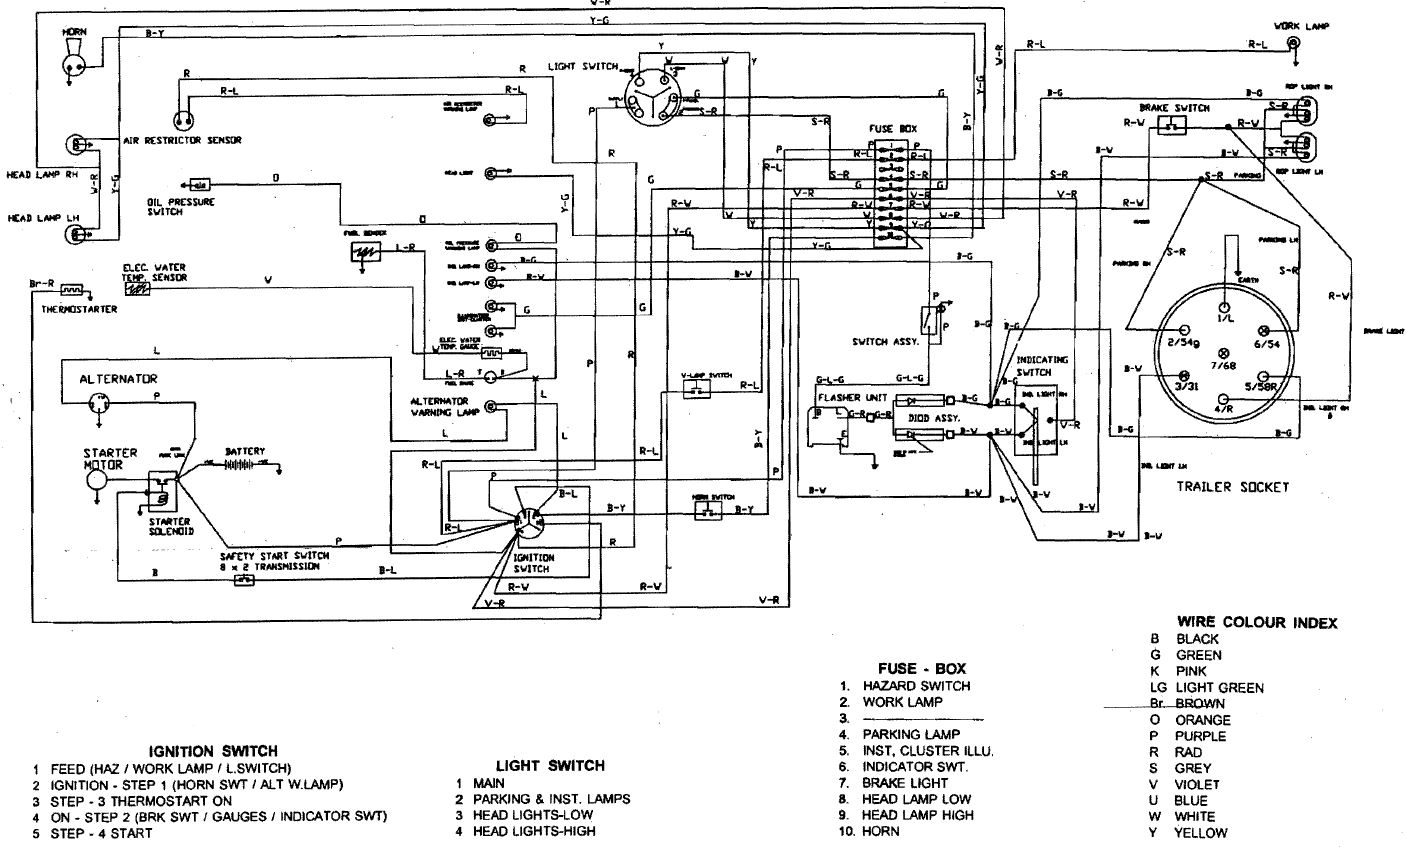 ignition switch wiring diagram rh tractorbynet com 1966 Chevy Wiring  Schematic 1997 Ford F-150